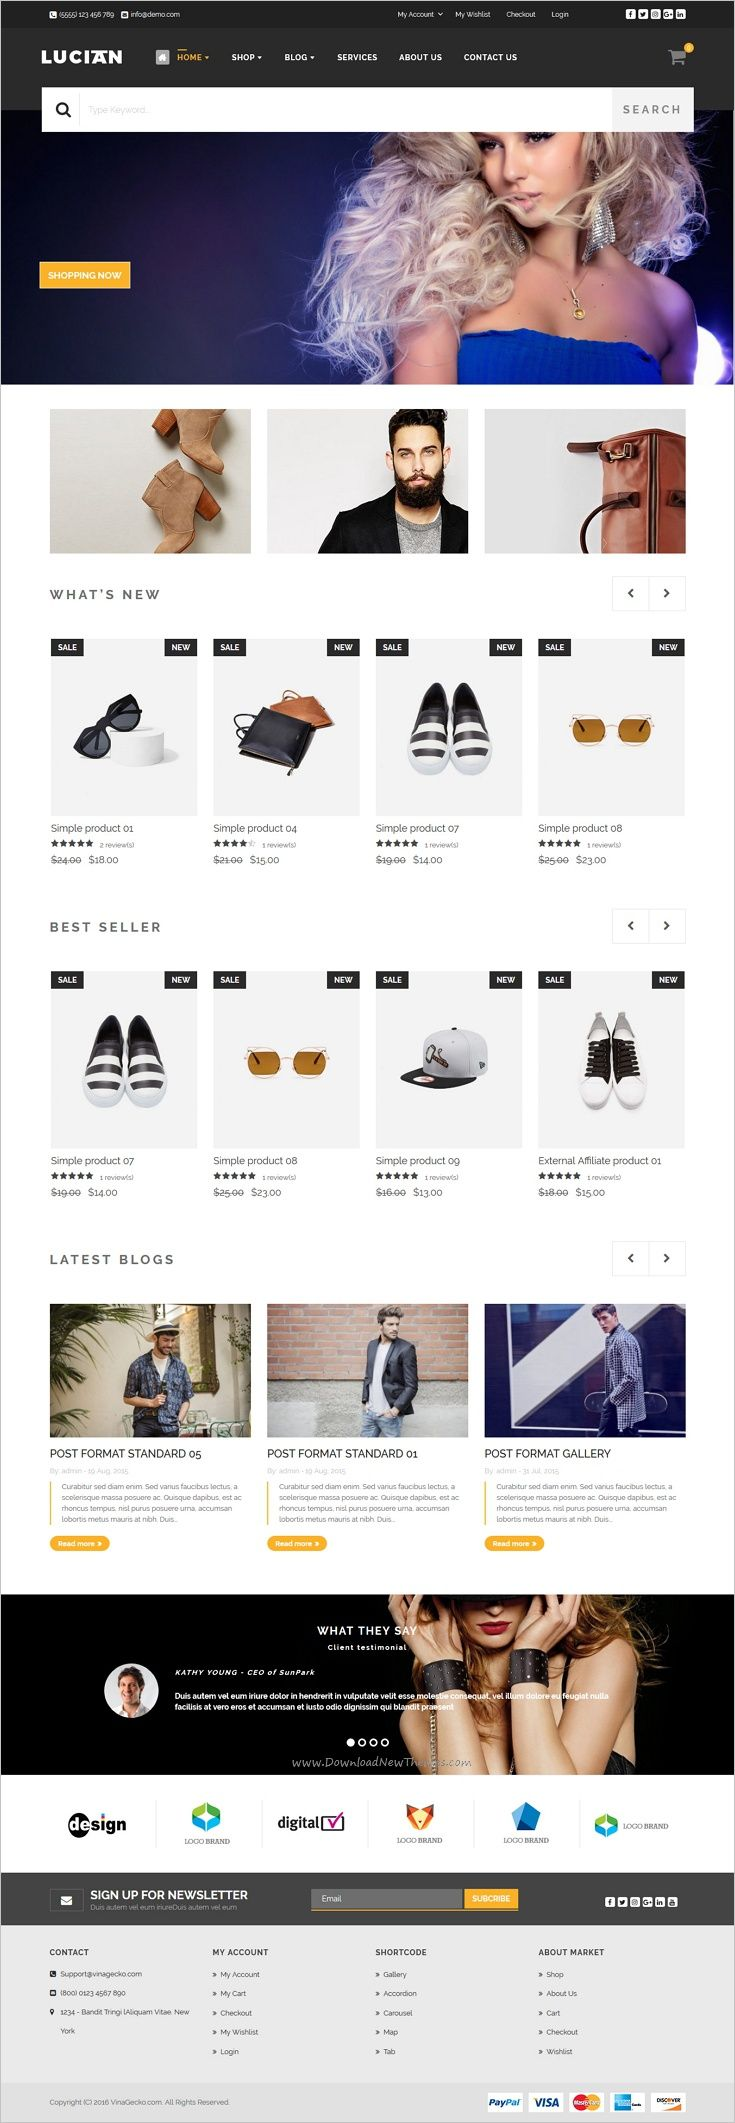 VG Lucian is a well-designed responsive @WooCommerce #WordPress #theme for stunning eCommerce #website with 8 unique homepage layouts download now➩ https://themeforest.net/item/vg-lucian-responsive-ecommerce-wordpress-theme/17042399?ref=Datasata